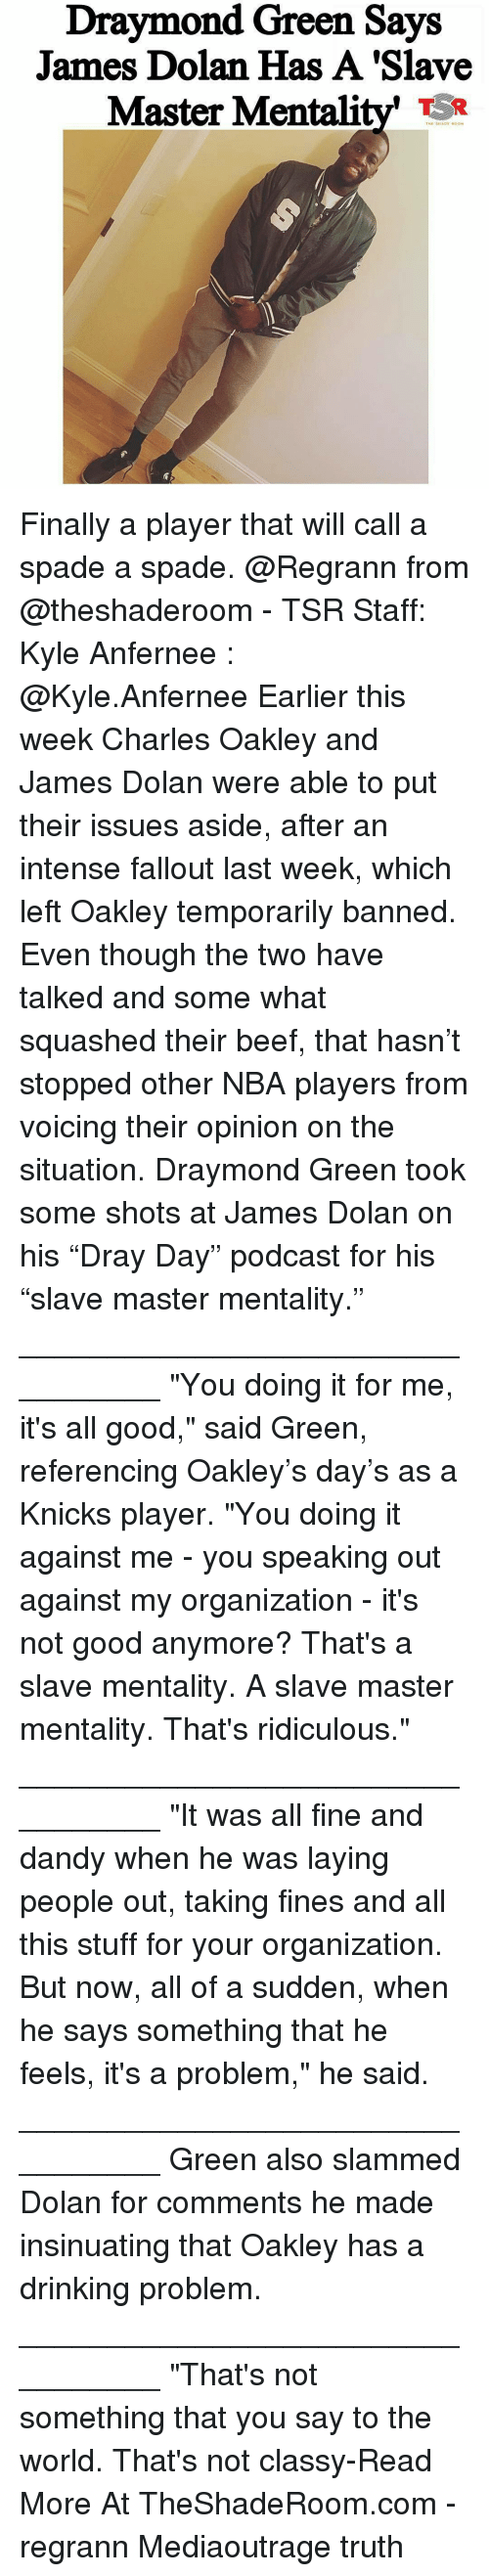 """Beef, Beef, and Draymond Green: Draymond Green Says  James Dolan Has A Slave  Master Mentali  THE S Finally a player that will call a spade a spade. @Regrann from @theshaderoom - TSR Staff: Kyle Anfernee : @Kyle.Anfernee Earlier this week Charles Oakley and James Dolan were able to put their issues aside, after an intense fallout last week, which left Oakley temporarily banned. Even though the two have talked and some what squashed their beef, that hasn't stopped other NBA players from voicing their opinion on the situation. Draymond Green took some shots at James Dolan on his """"Dray Day"""" podcast for his """"slave master mentality."""" _________________________________ """"You doing it for me, it's all good,"""" said Green, referencing Oakley's day's as a Knicks player. """"You doing it against me - you speaking out against my organization - it's not good anymore? That's a slave mentality. A slave master mentality. That's ridiculous."""" _________________________________ """"It was all fine and dandy when he was laying people out, taking fines and all this stuff for your organization. But now, all of a sudden, when he says something that he feels, it's a problem,"""" he said. _________________________________ Green also slammed Dolan for comments he made insinuating that Oakley has a drinking problem. _________________________________ """"That's not something that you say to the world. That's not classy-Read More At TheShadeRoom.com - regrann Mediaoutrage truth"""